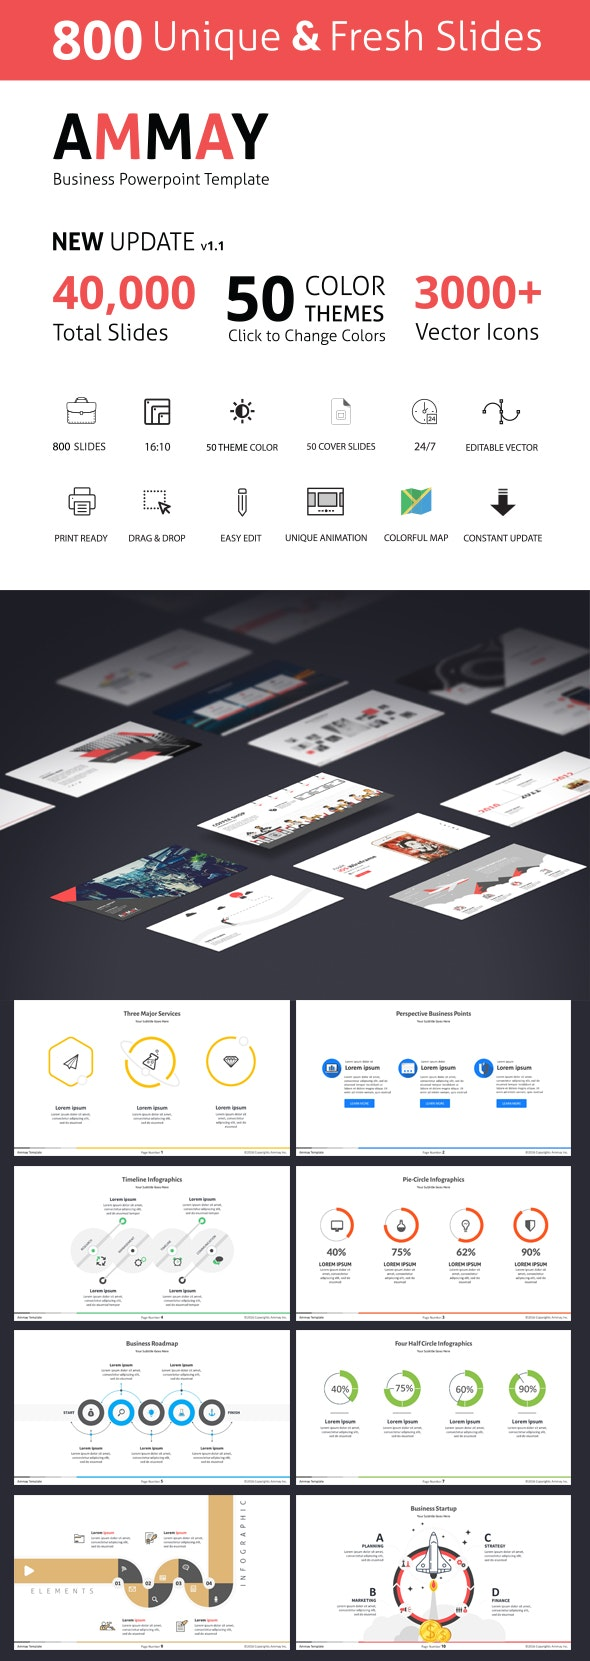 Ammay Business Powerpoint Template Newly Updated 2019 - Business PowerPoint Templates